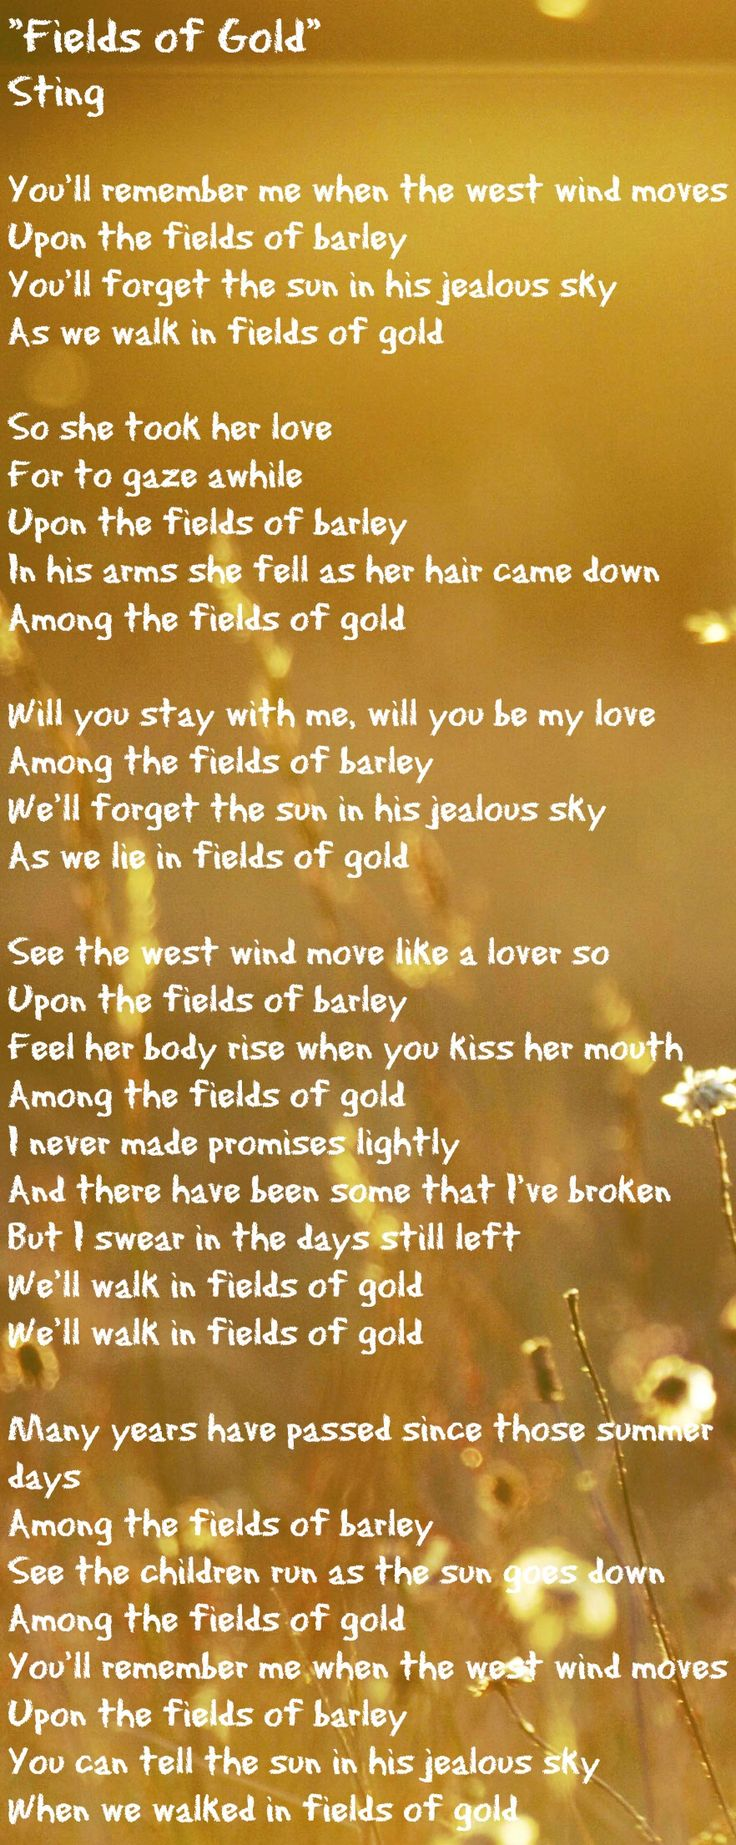 """Fields of Gold"" love song by Sting."